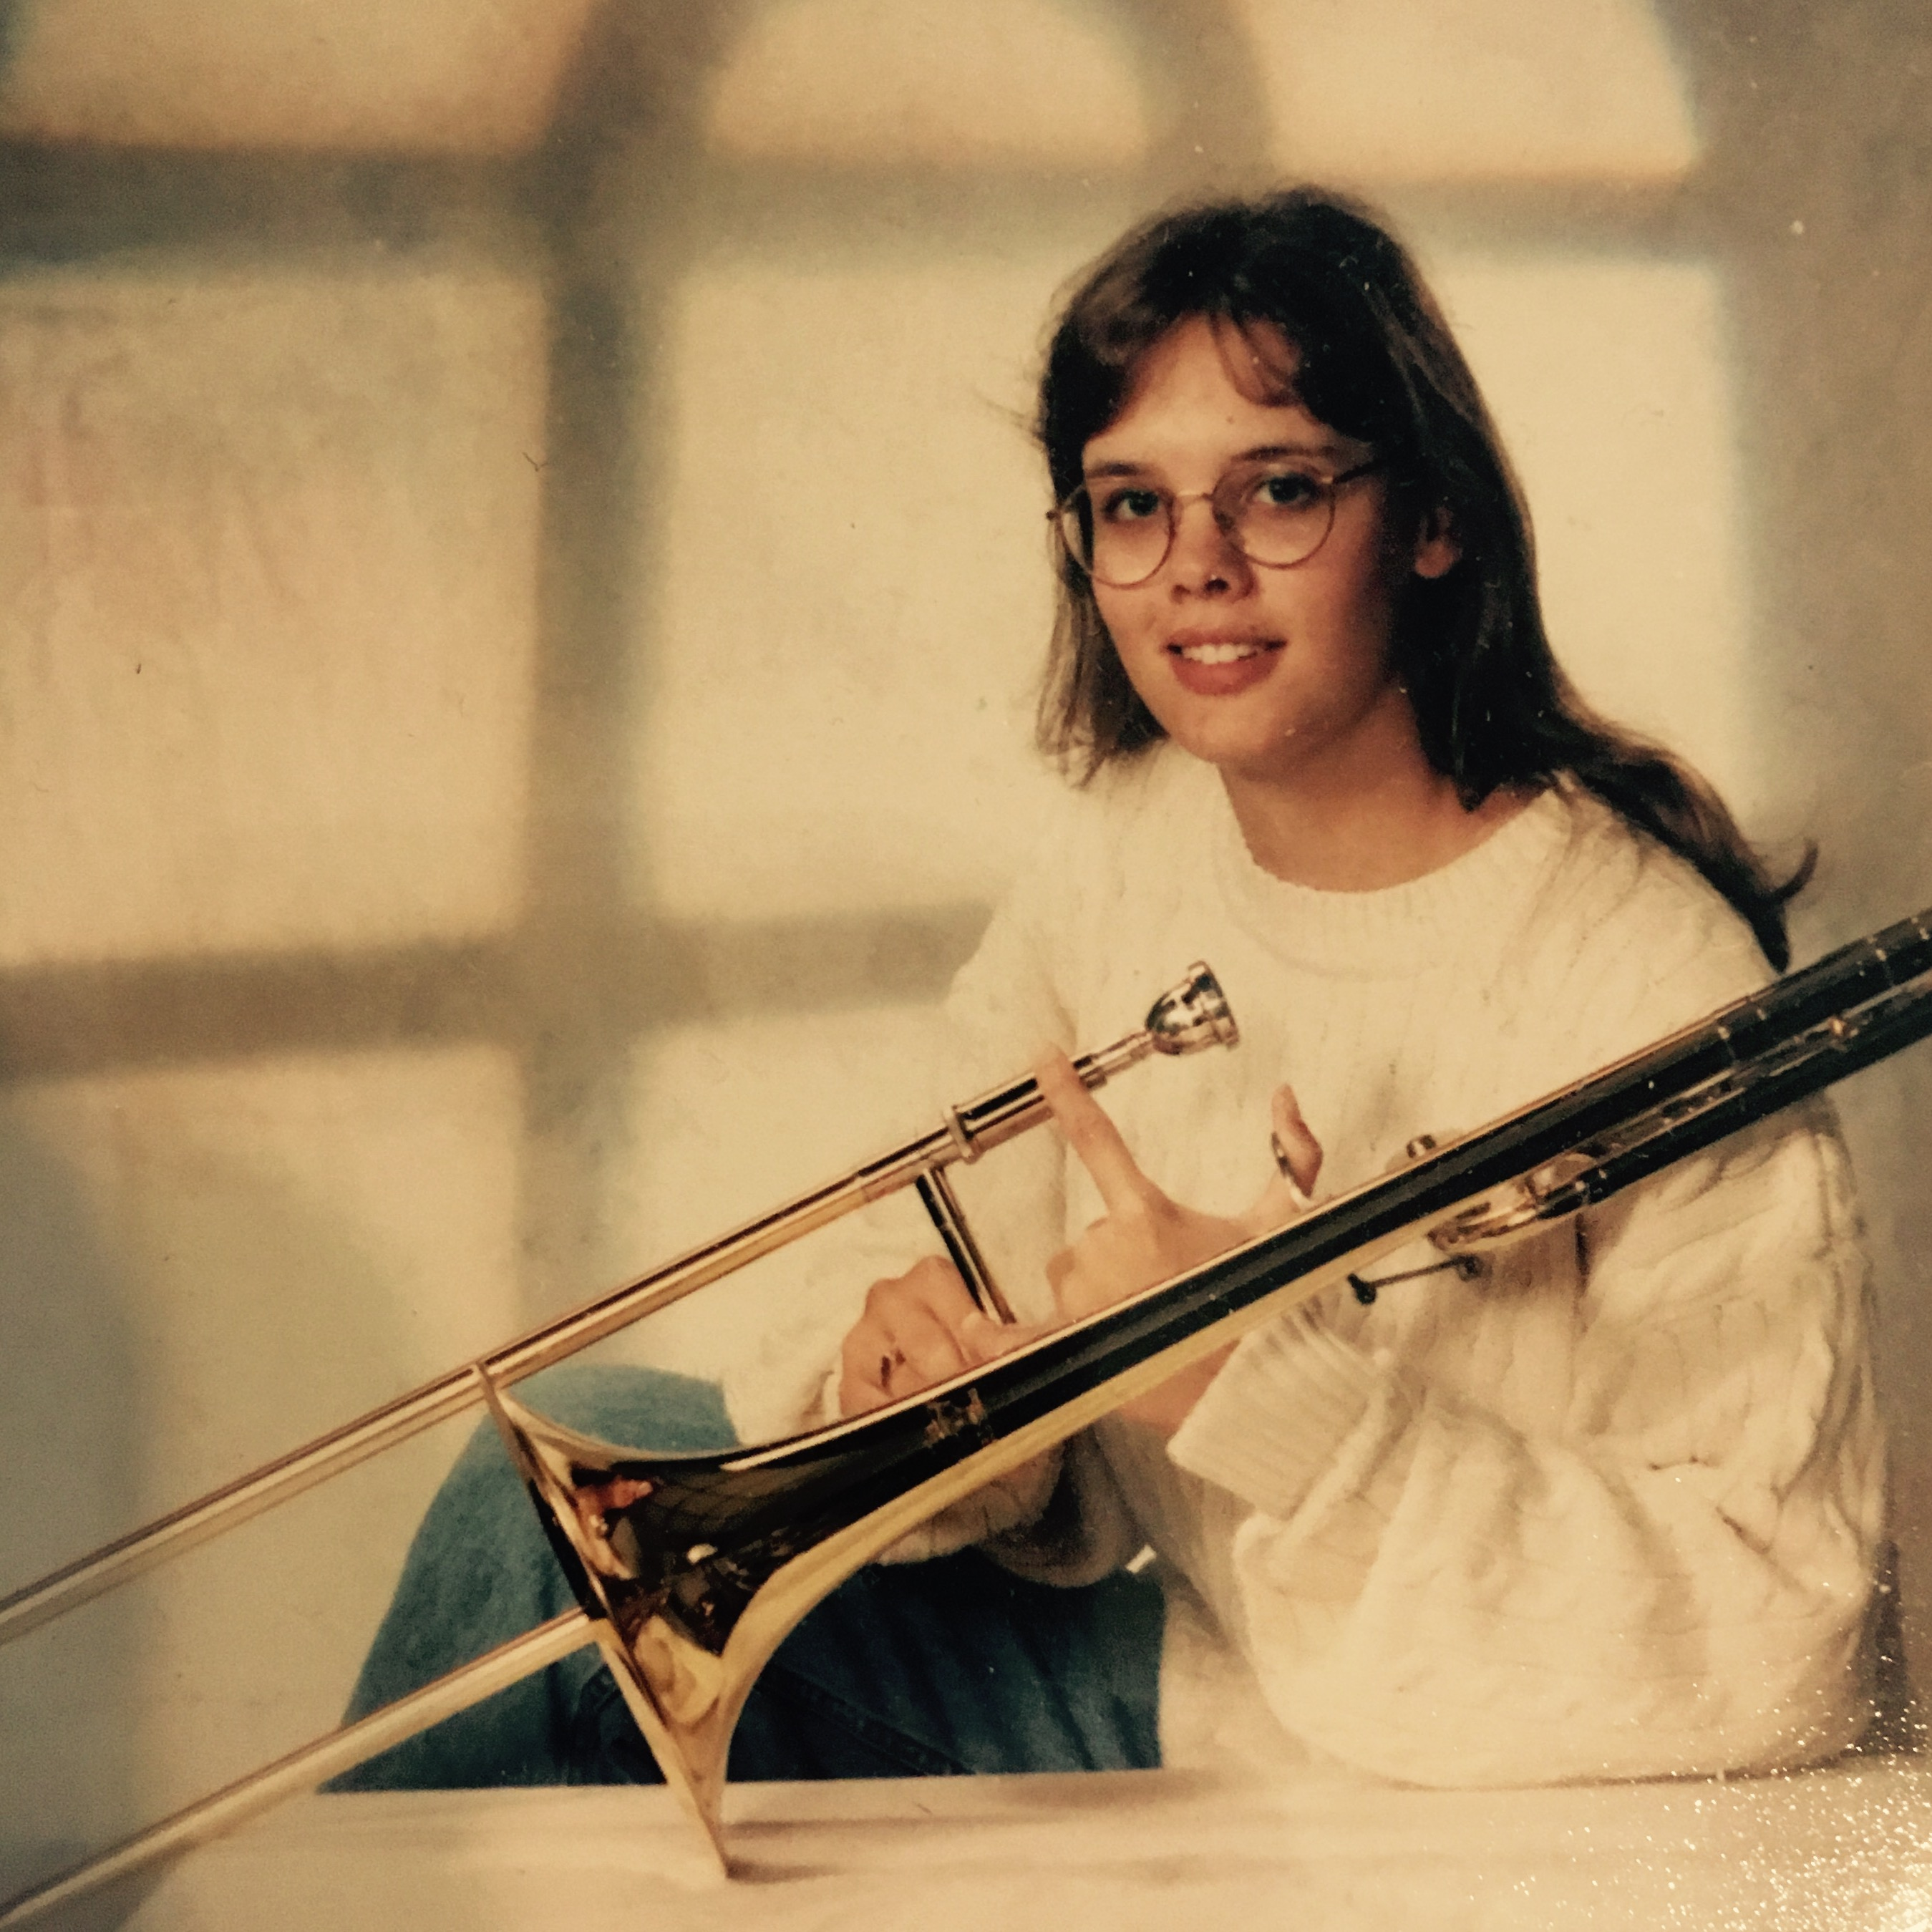 Kerri Smith trombone